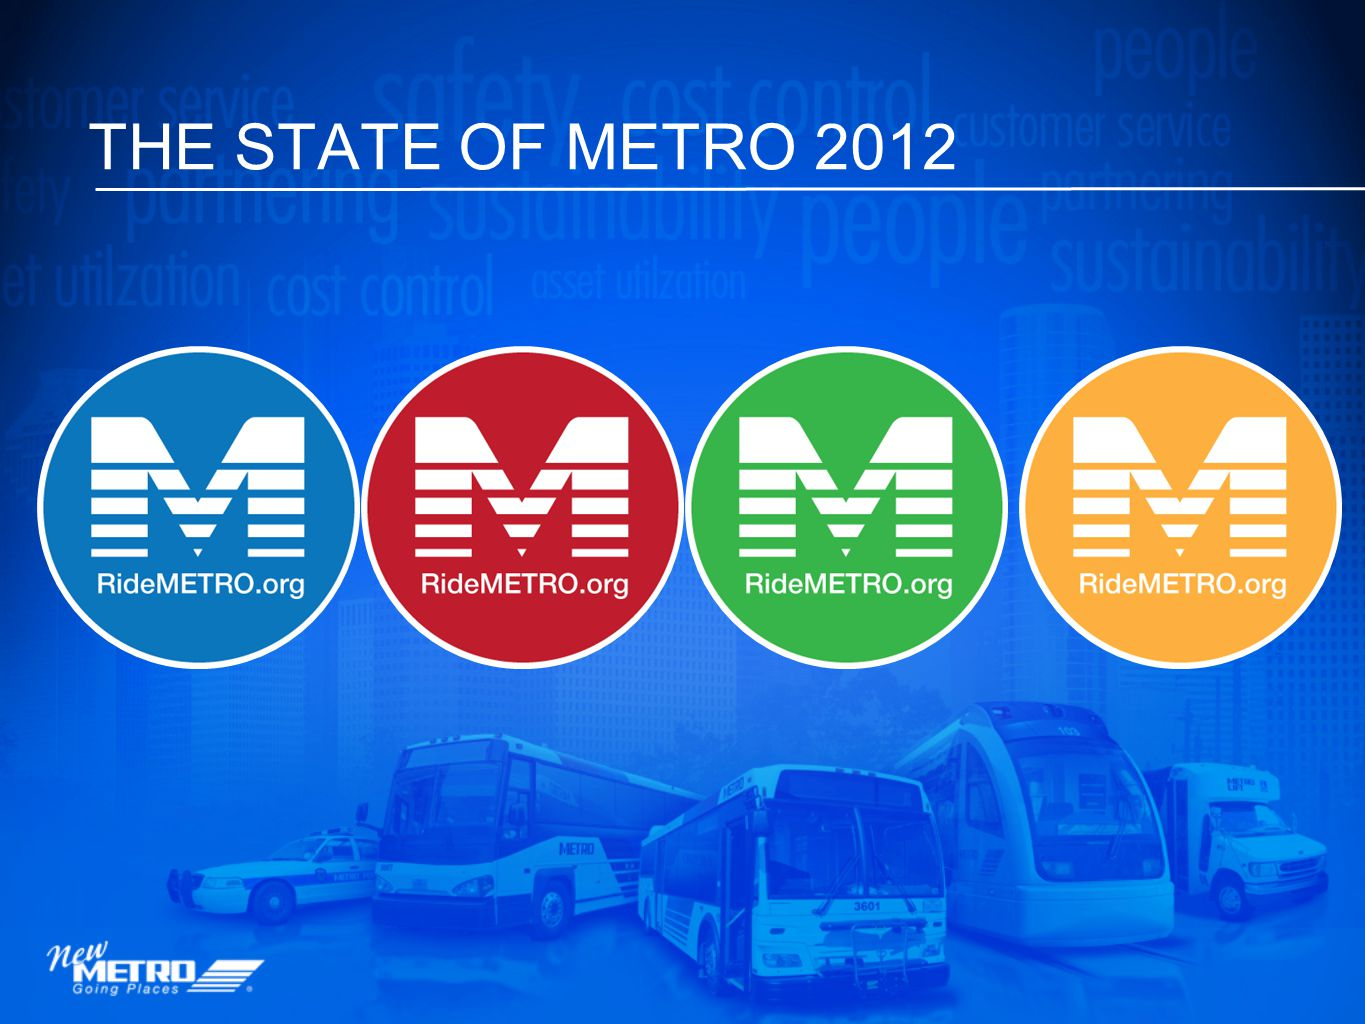 THE STATE OF METRO 2012 We fixed things We're ready for what comes next We changed things We're making things work